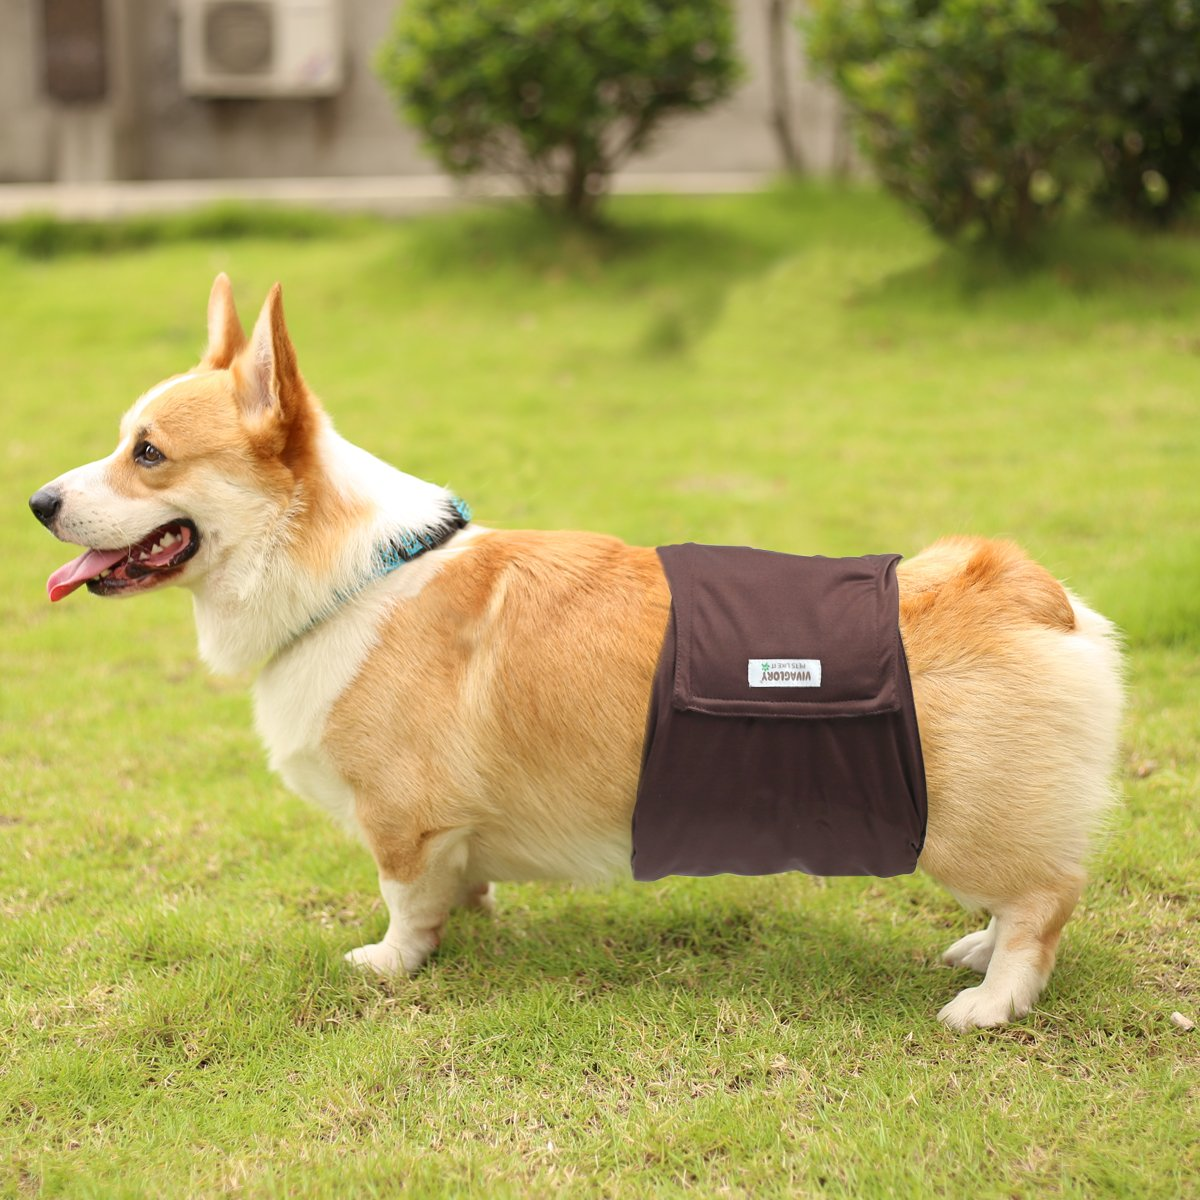 photo of a corgi wearing a dog diaper in its torso